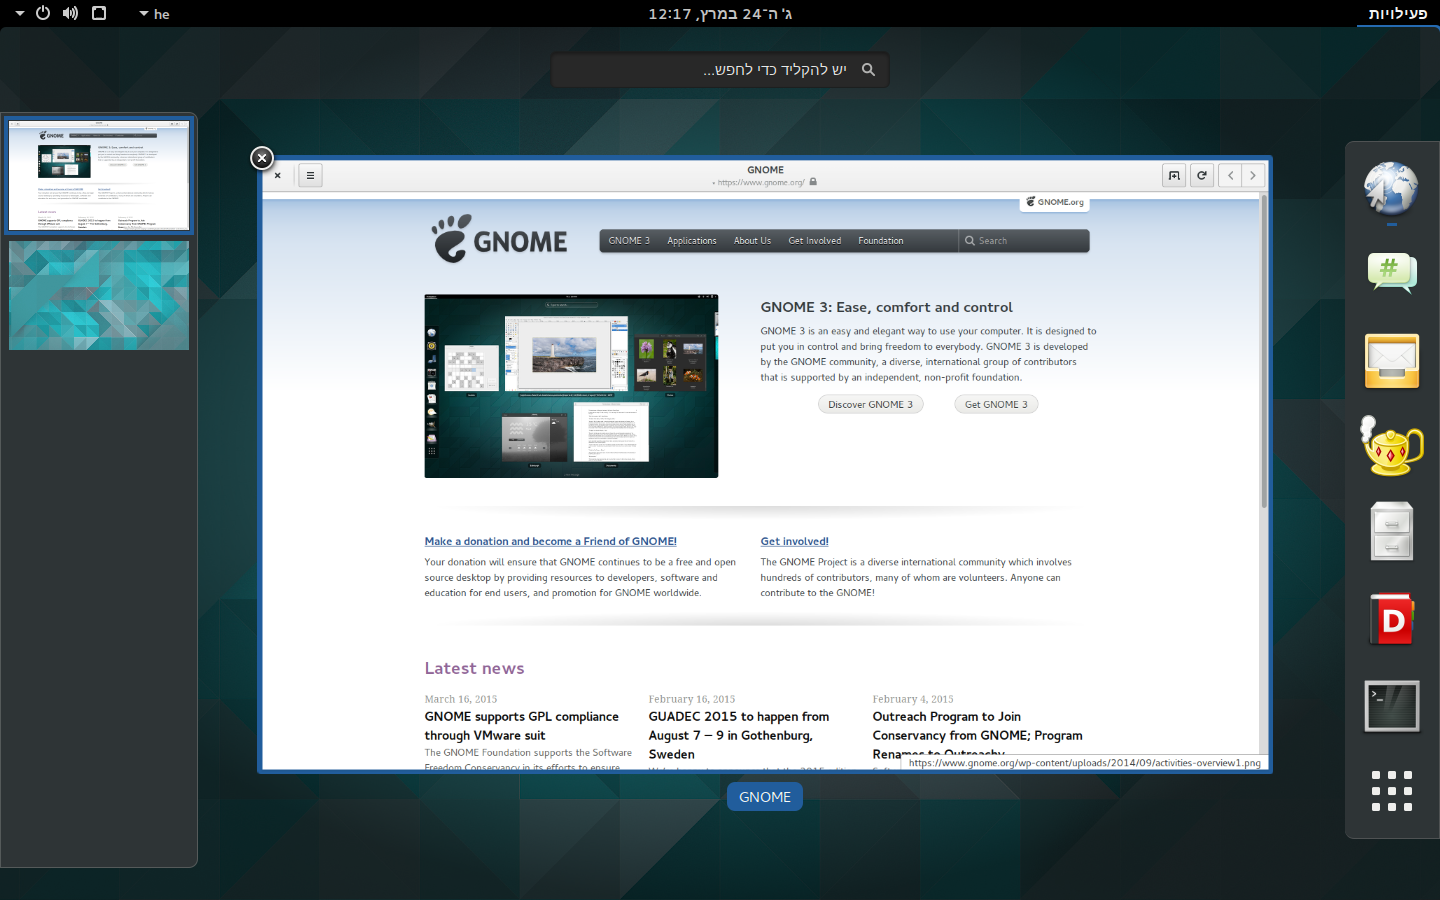 GNOME 3.16.0 Hebrew